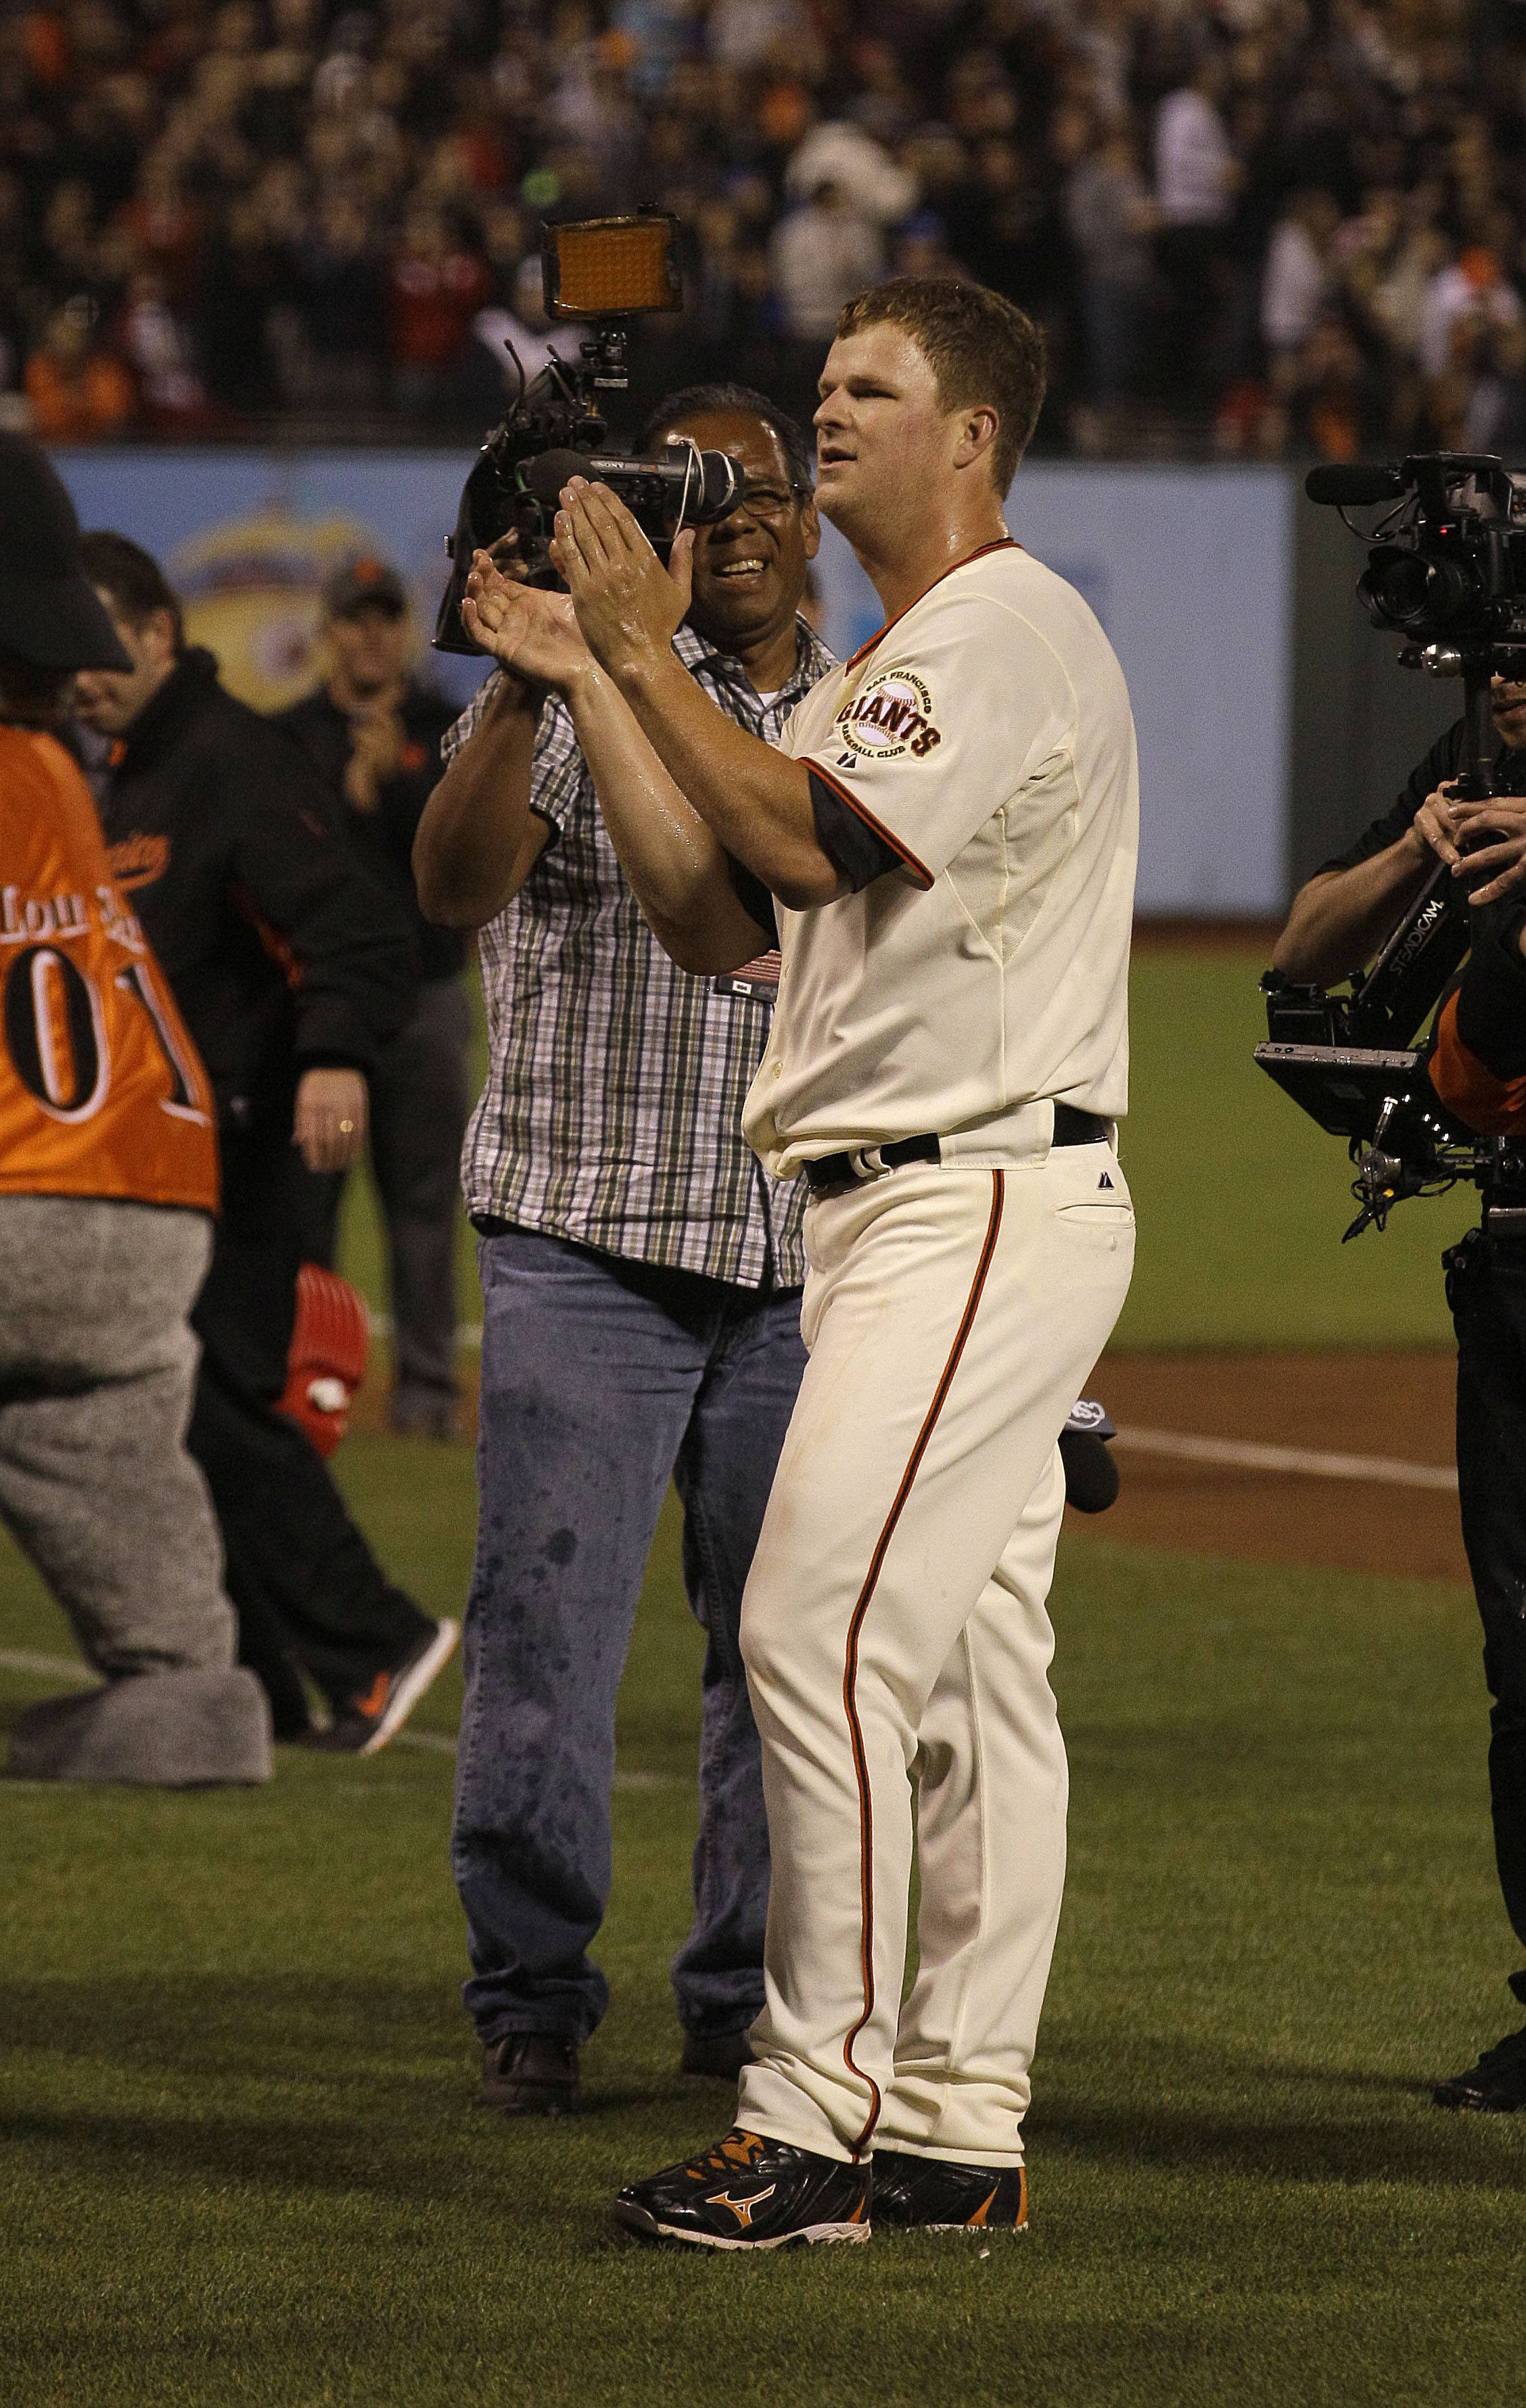 San Francisco Giants pitcher Matt Cain salutes the fans after his perfect game.